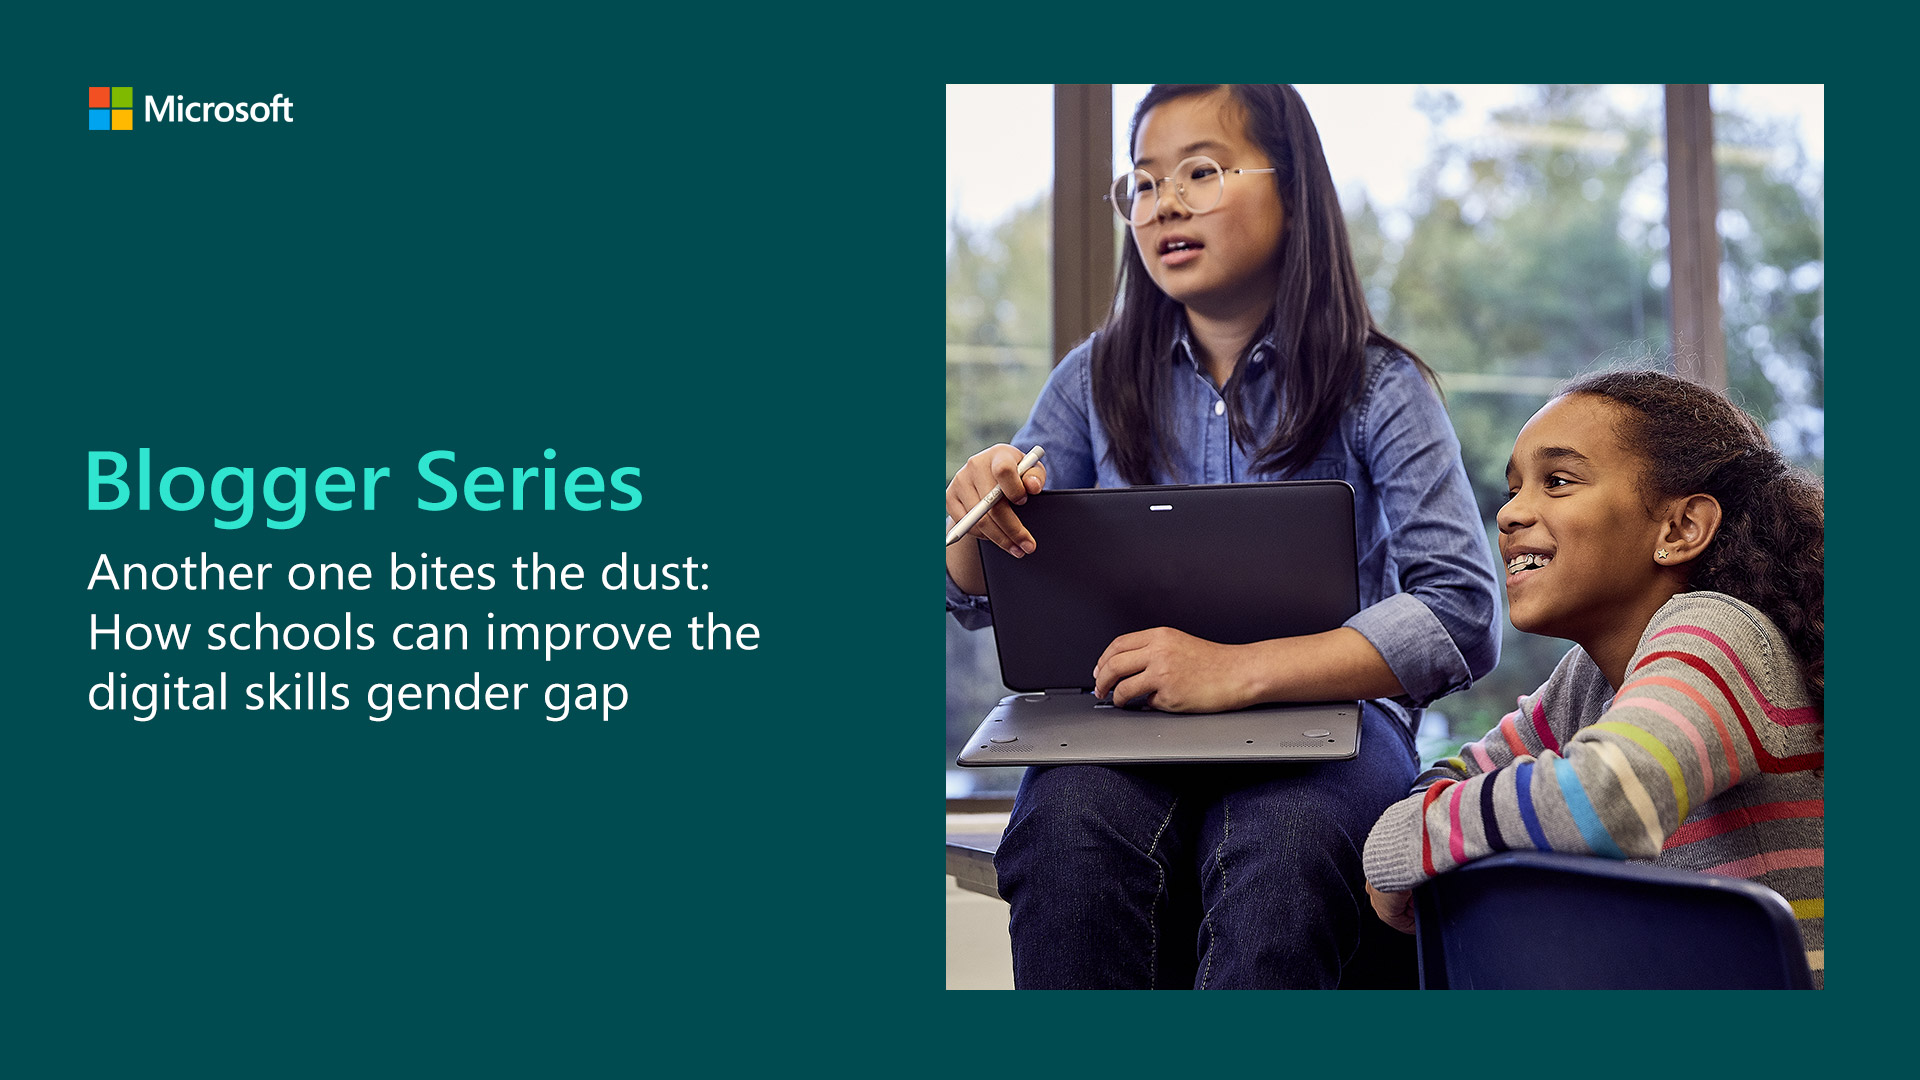 Microsoft Blogger Series banner showing two young girls using technology